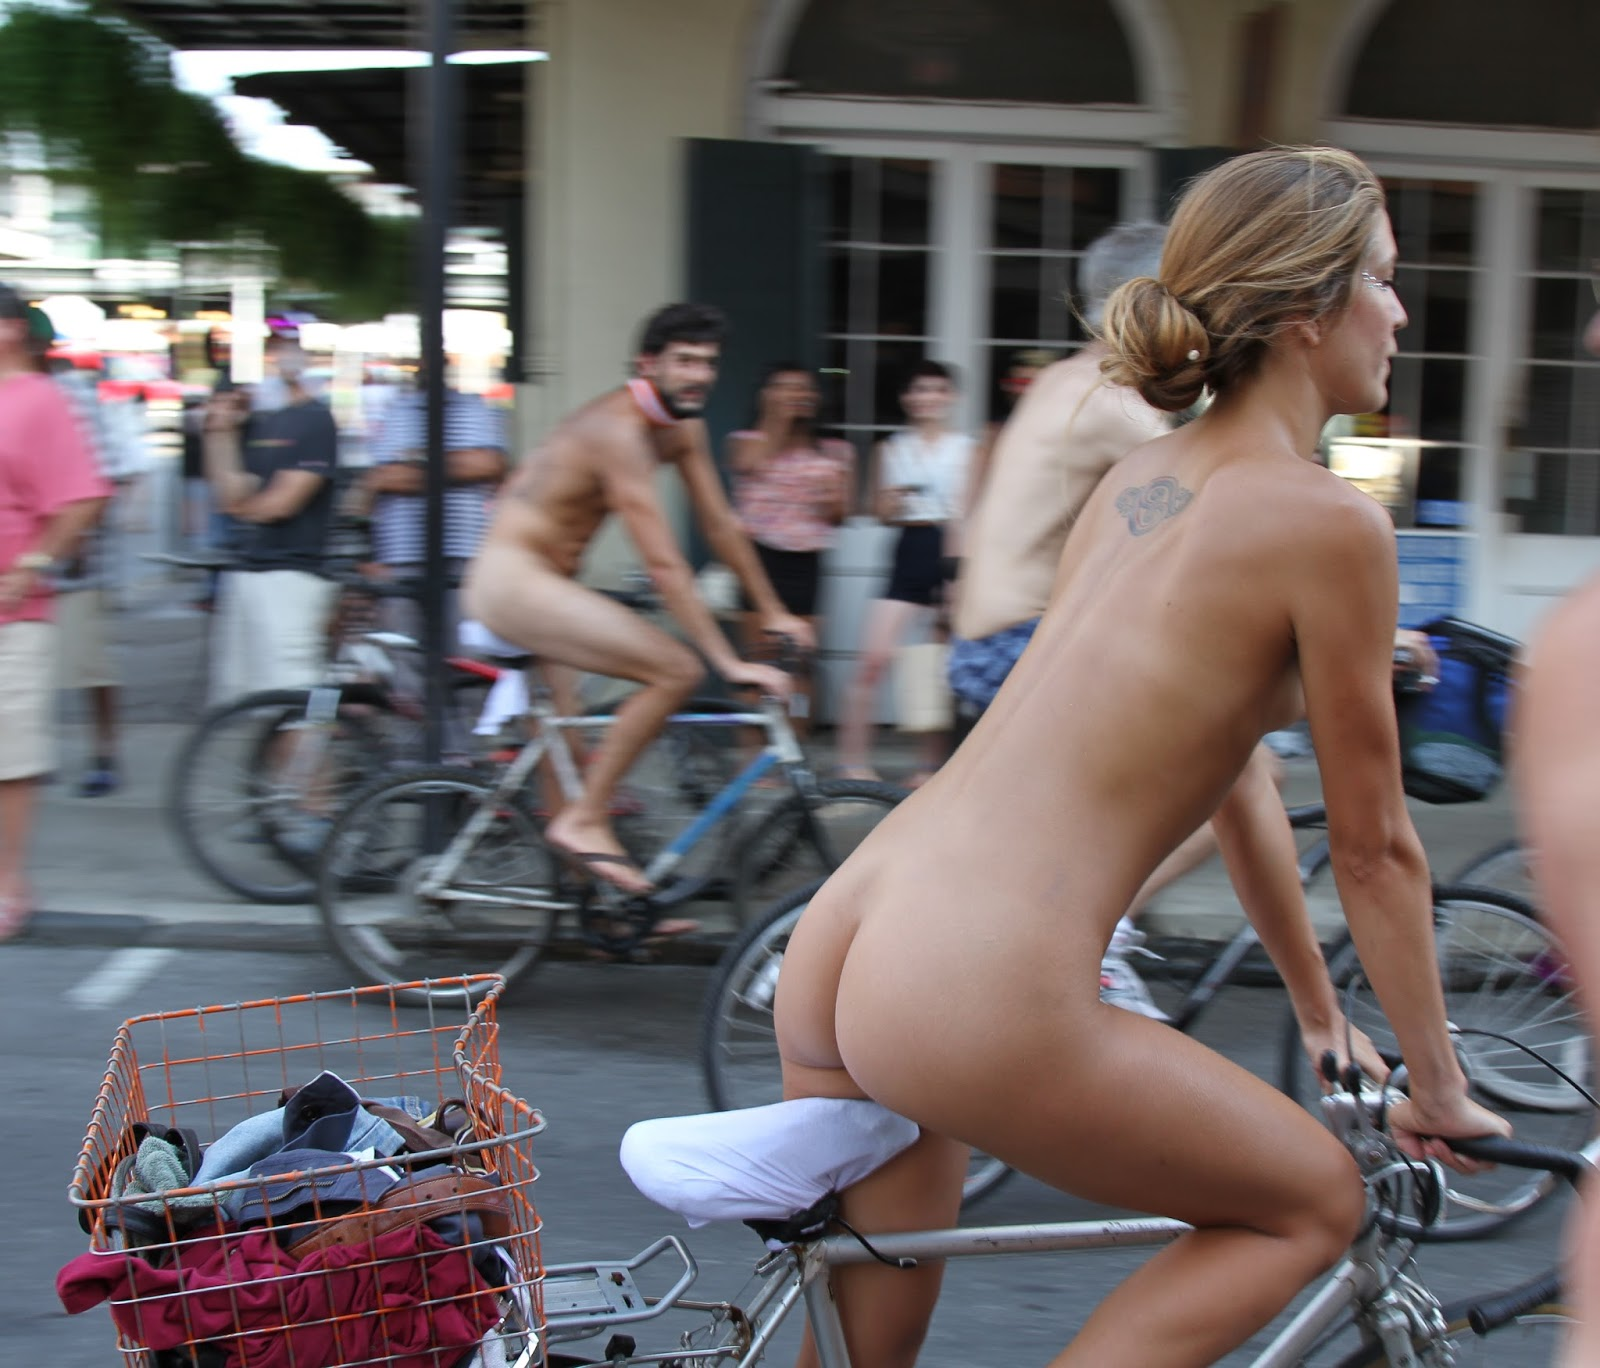 New nudist orleans #14